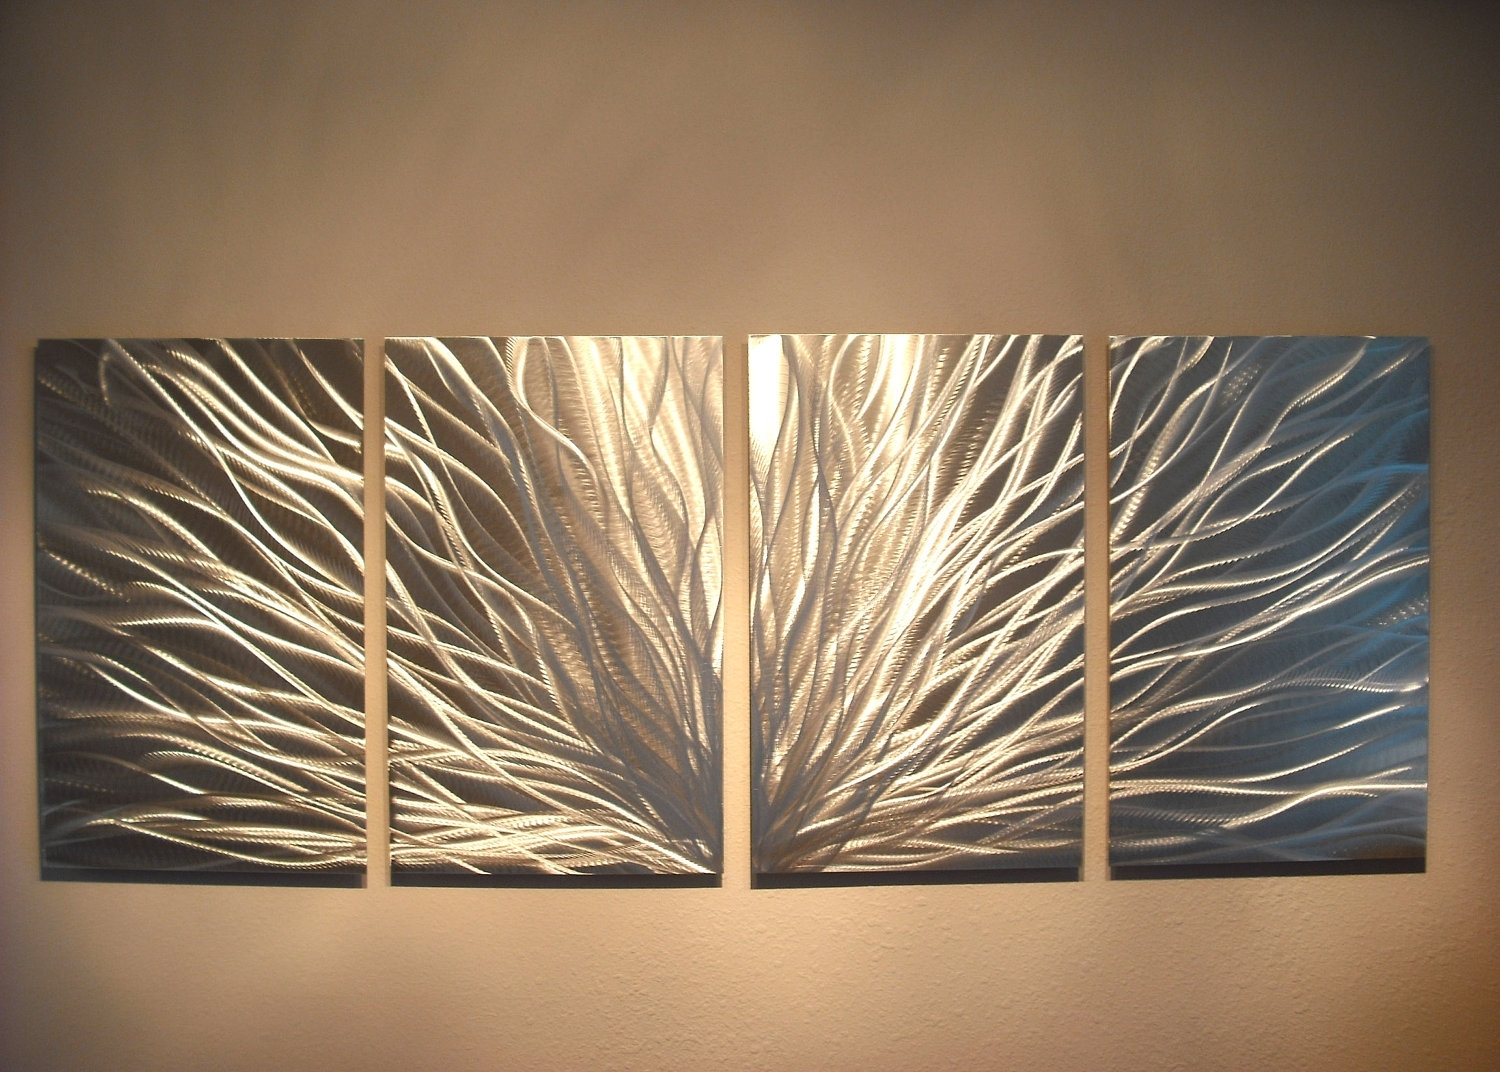 Radiance – Abstract Metal Wall Art Contemporary Modern Decor With Regard To Most Popular Inexpensive Abstract Metal Wall Art (Gallery 2 of 20)